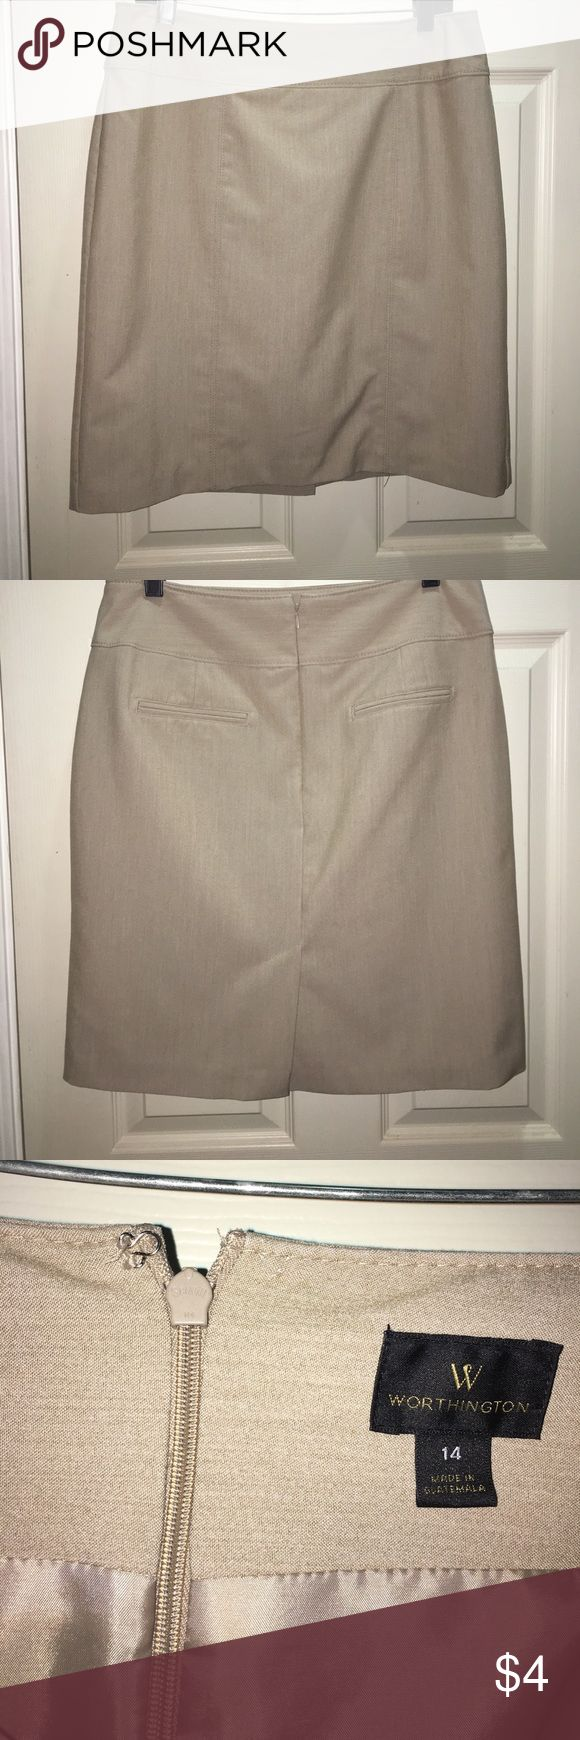 Tan pencil skirt Tan pencil skirt. Missing the hook for the hook and eye (easy to sew back on). Not stretchy fabric Worthington Skirts Pencil